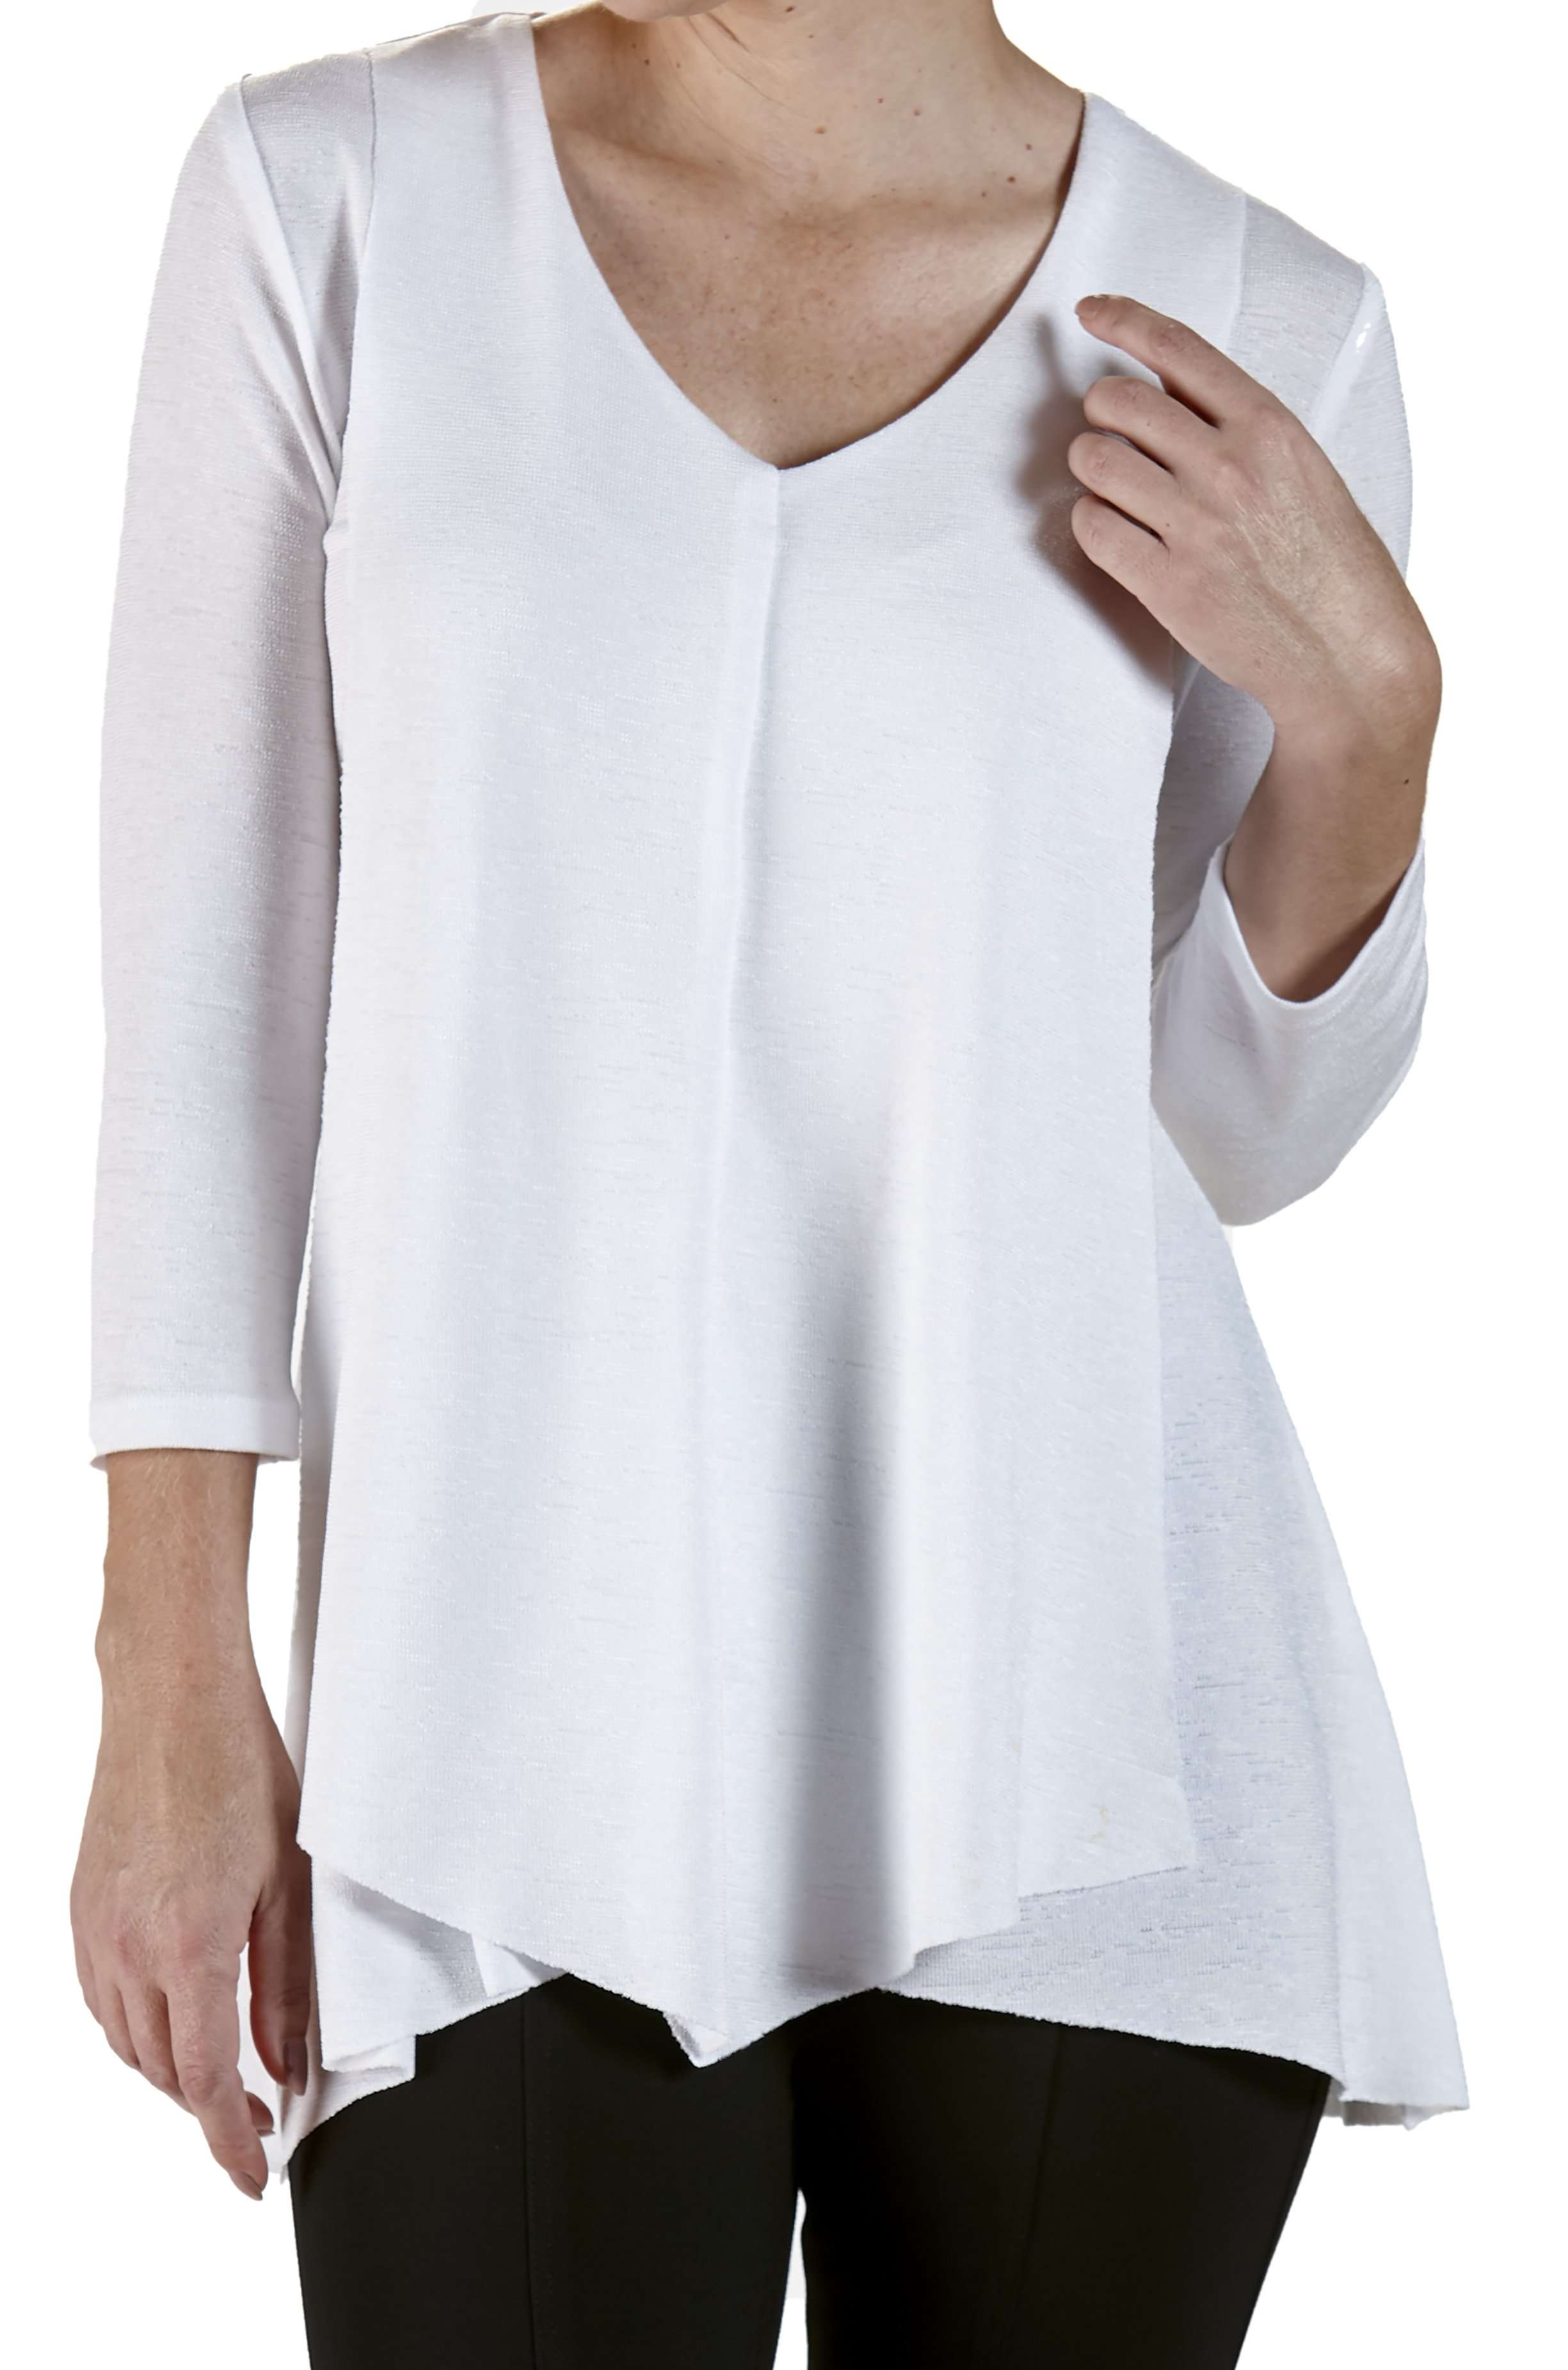 White Tunic Top Features Quality Fabric and Slimming Design-Our best Seller -Quality Guaranteed - Yvonne Marie